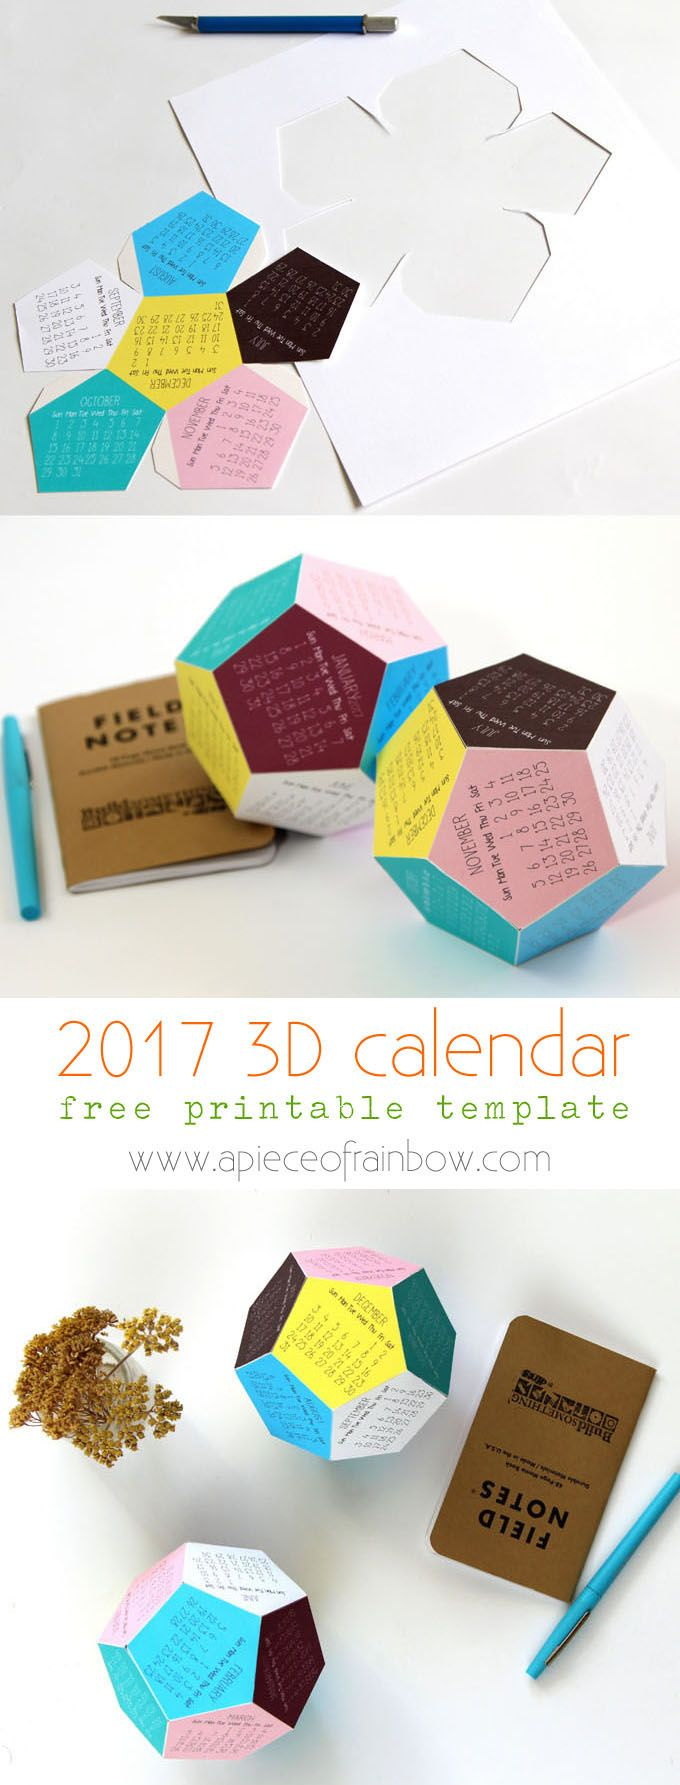 Make a super fun and unique 2017 dodecahedron 3D printable calendar! Free templates include color, black and white designs, and Silhouette cutting files!